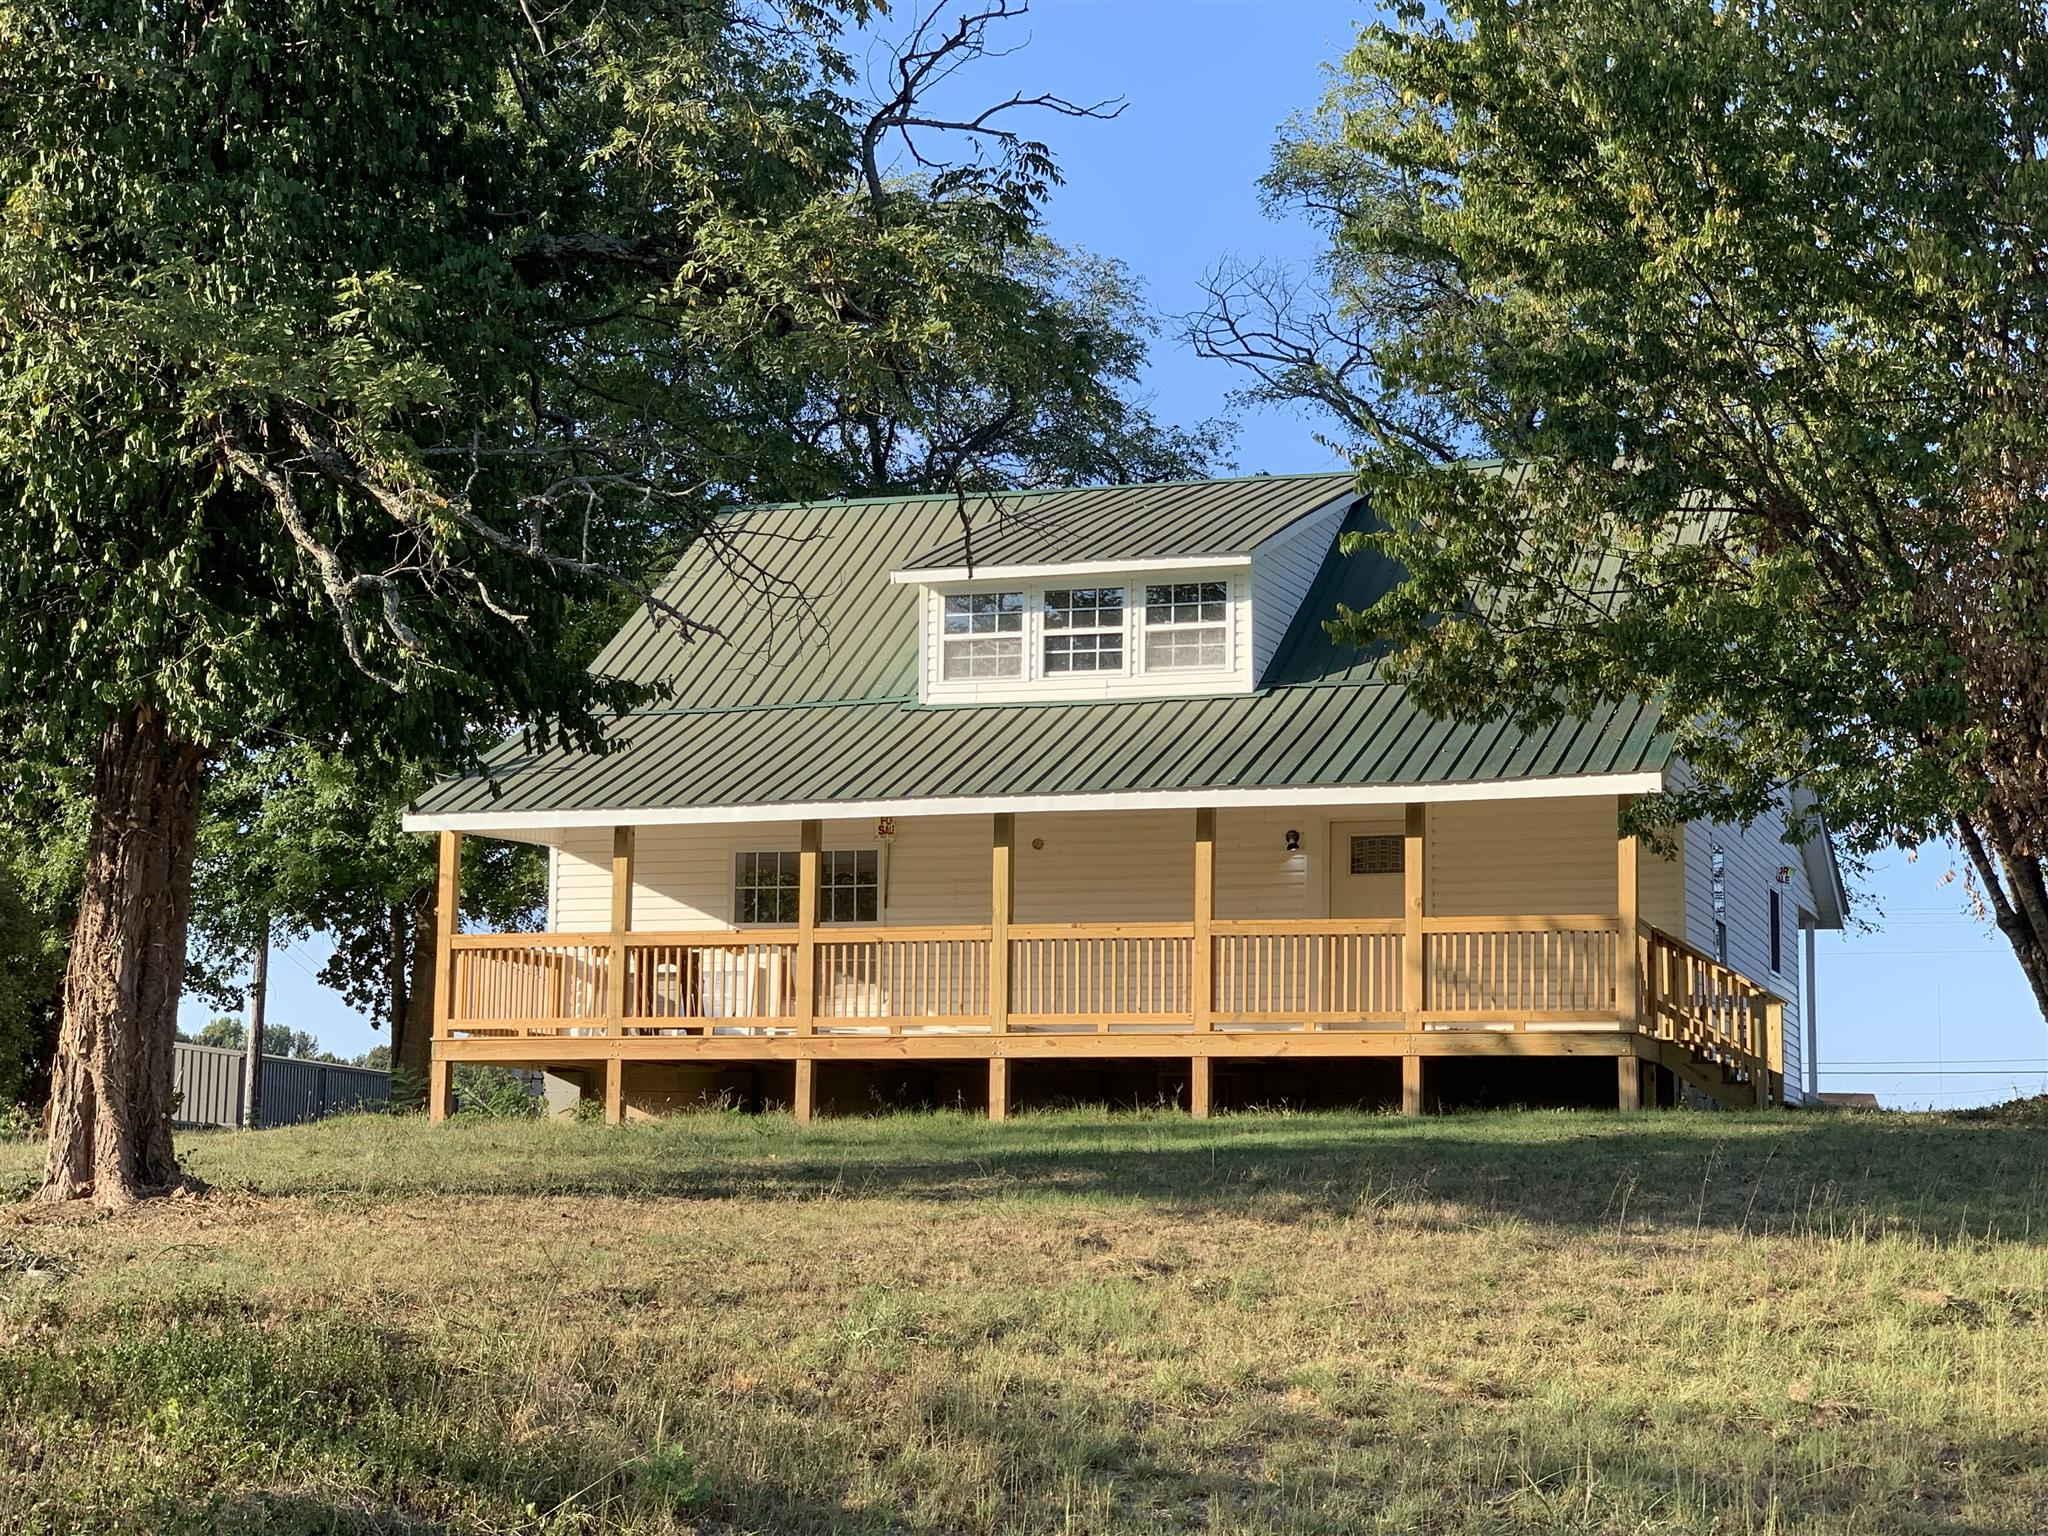 1301 Taylor Town Rd, White Bluff, TN 37187 - White Bluff, TN real estate listing